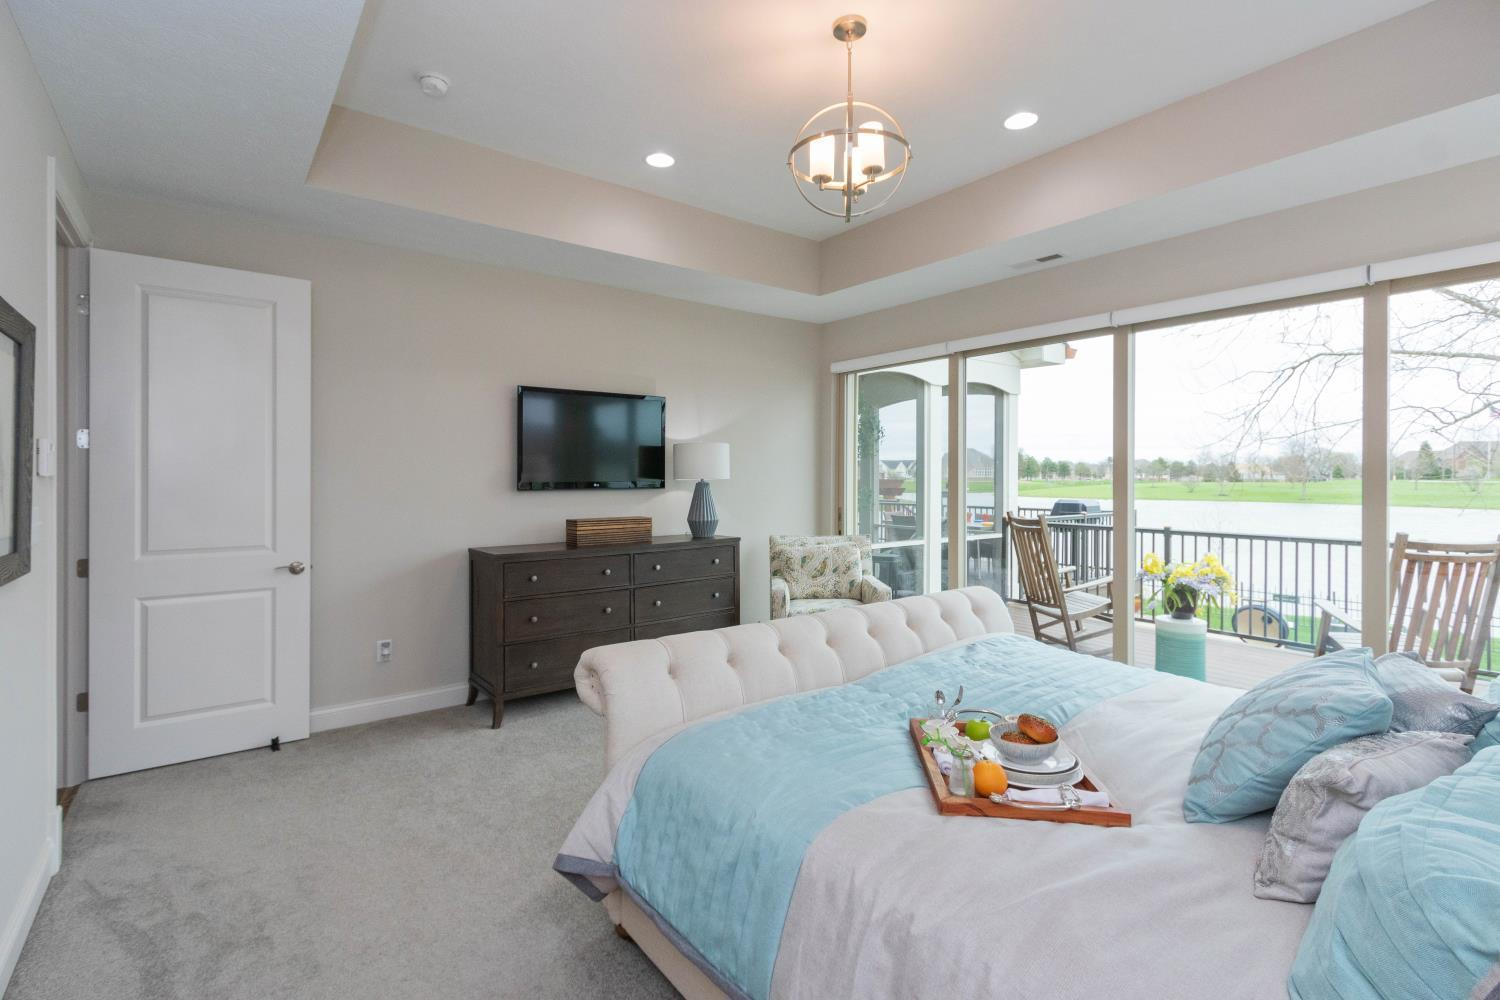 Bedroom featured in The Owl By Shoopman Homes in Indianapolis, IN